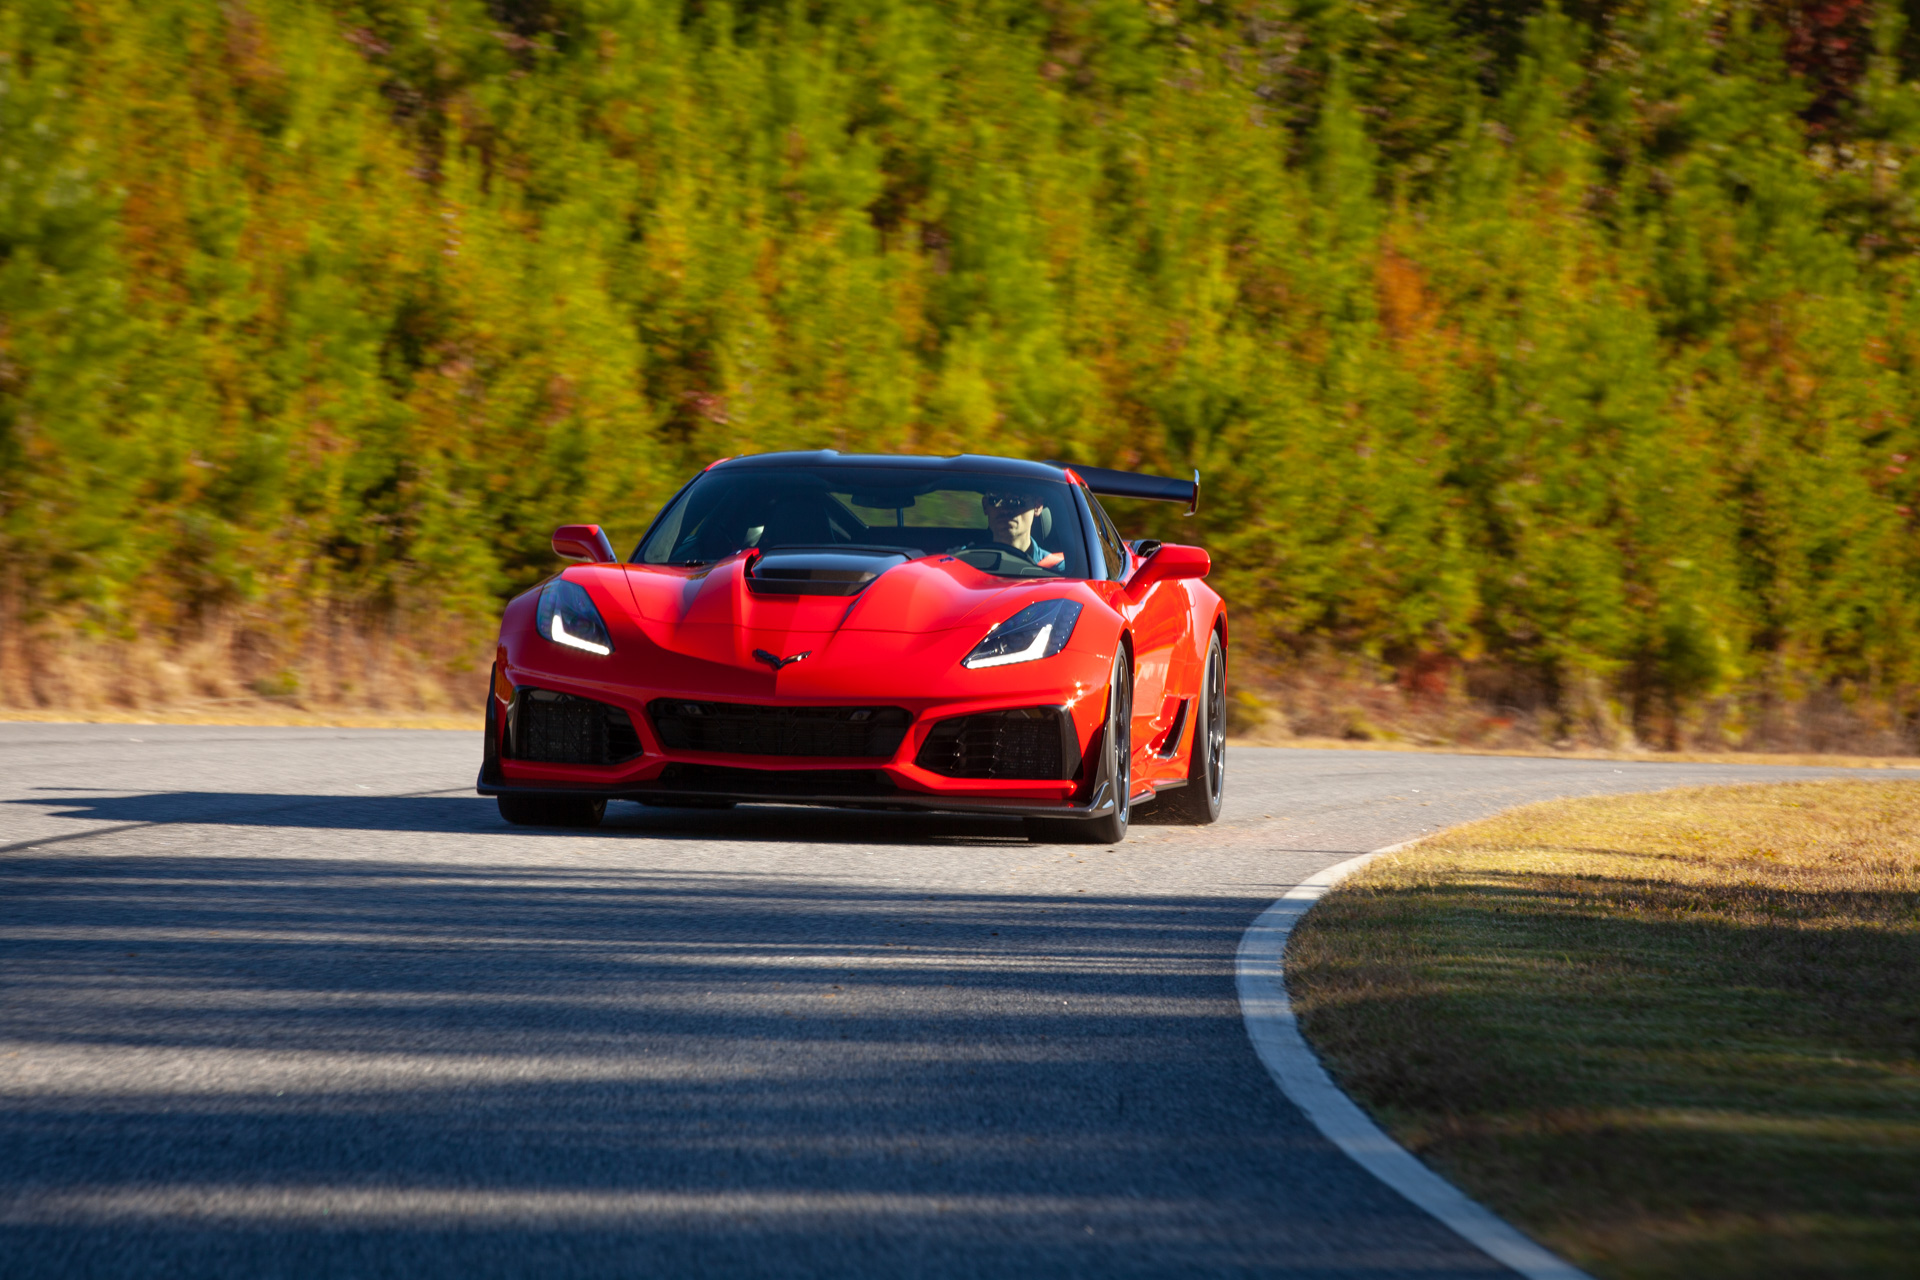 2019 chevrolet corvette zr1 first drive review  a stable